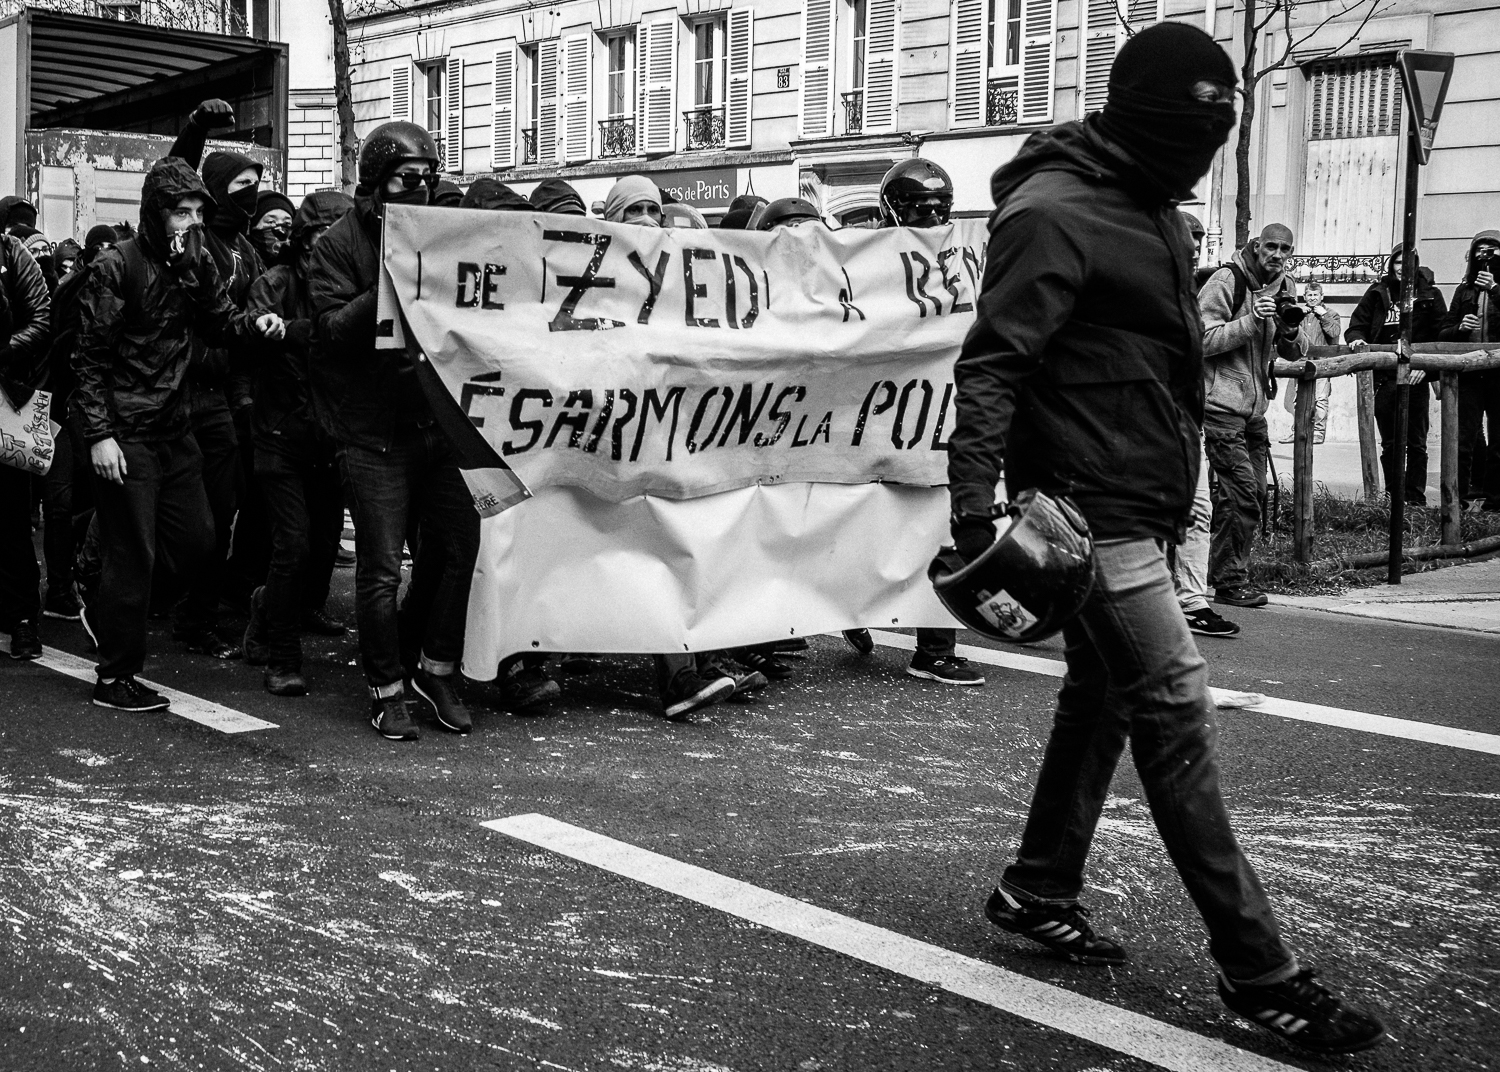 A single protestor leading the charge back in retaliation to the brutal tactics adopted by the riot police,5th April 2016.